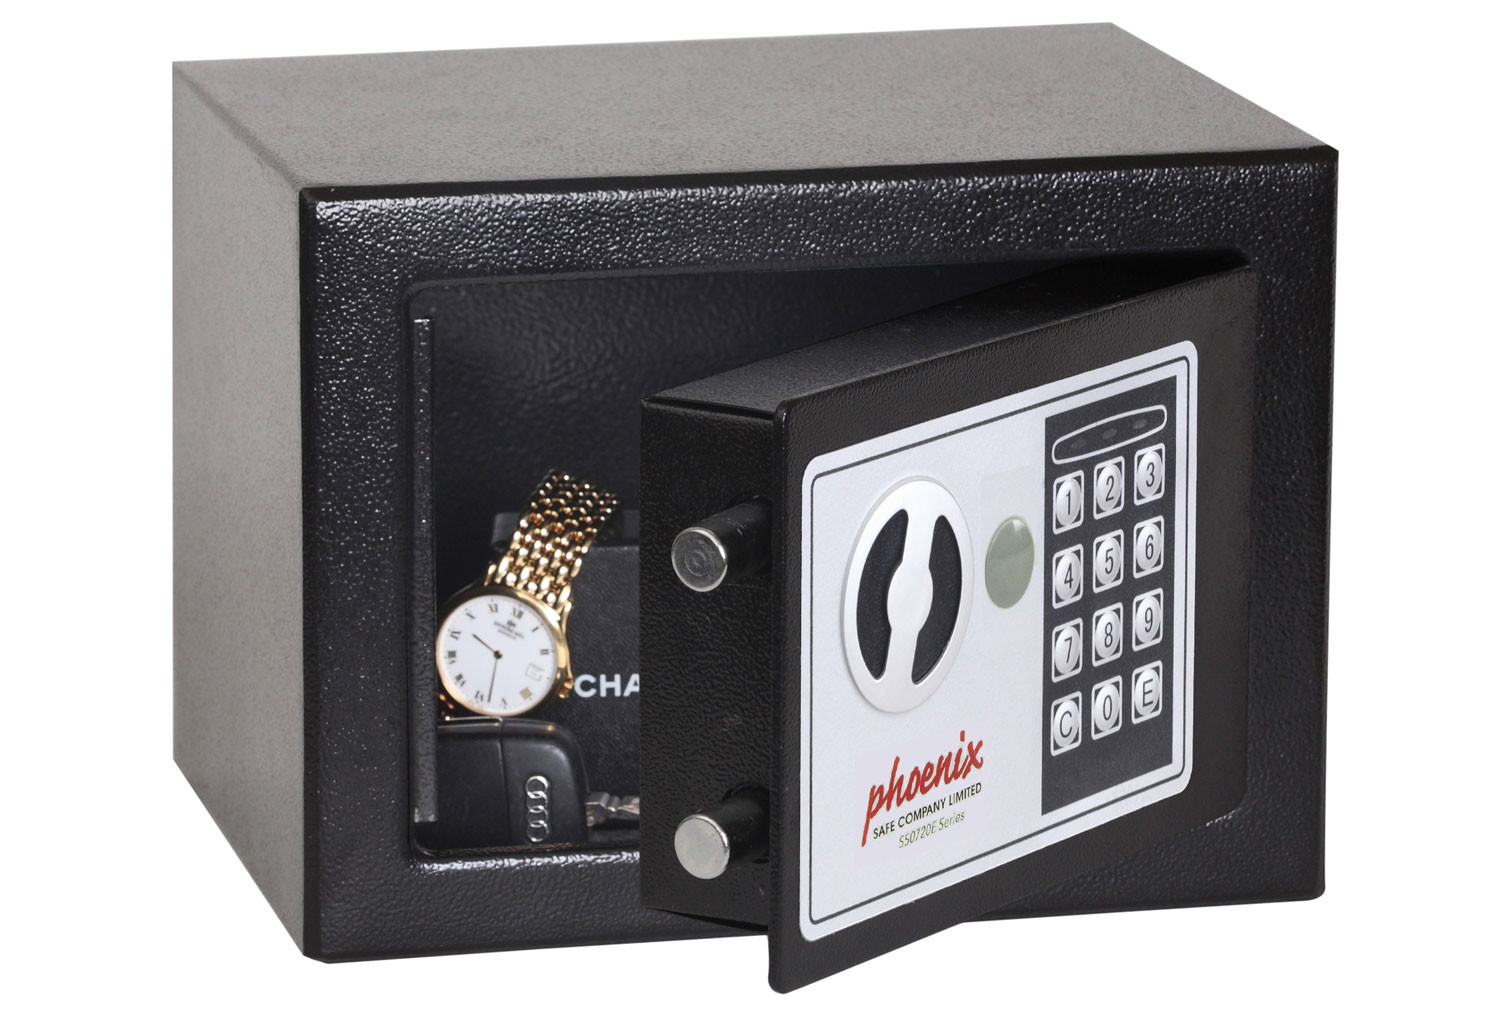 Phoenix SS0721E Compact Home Office Safe With Electronic Lock (5ltrs)